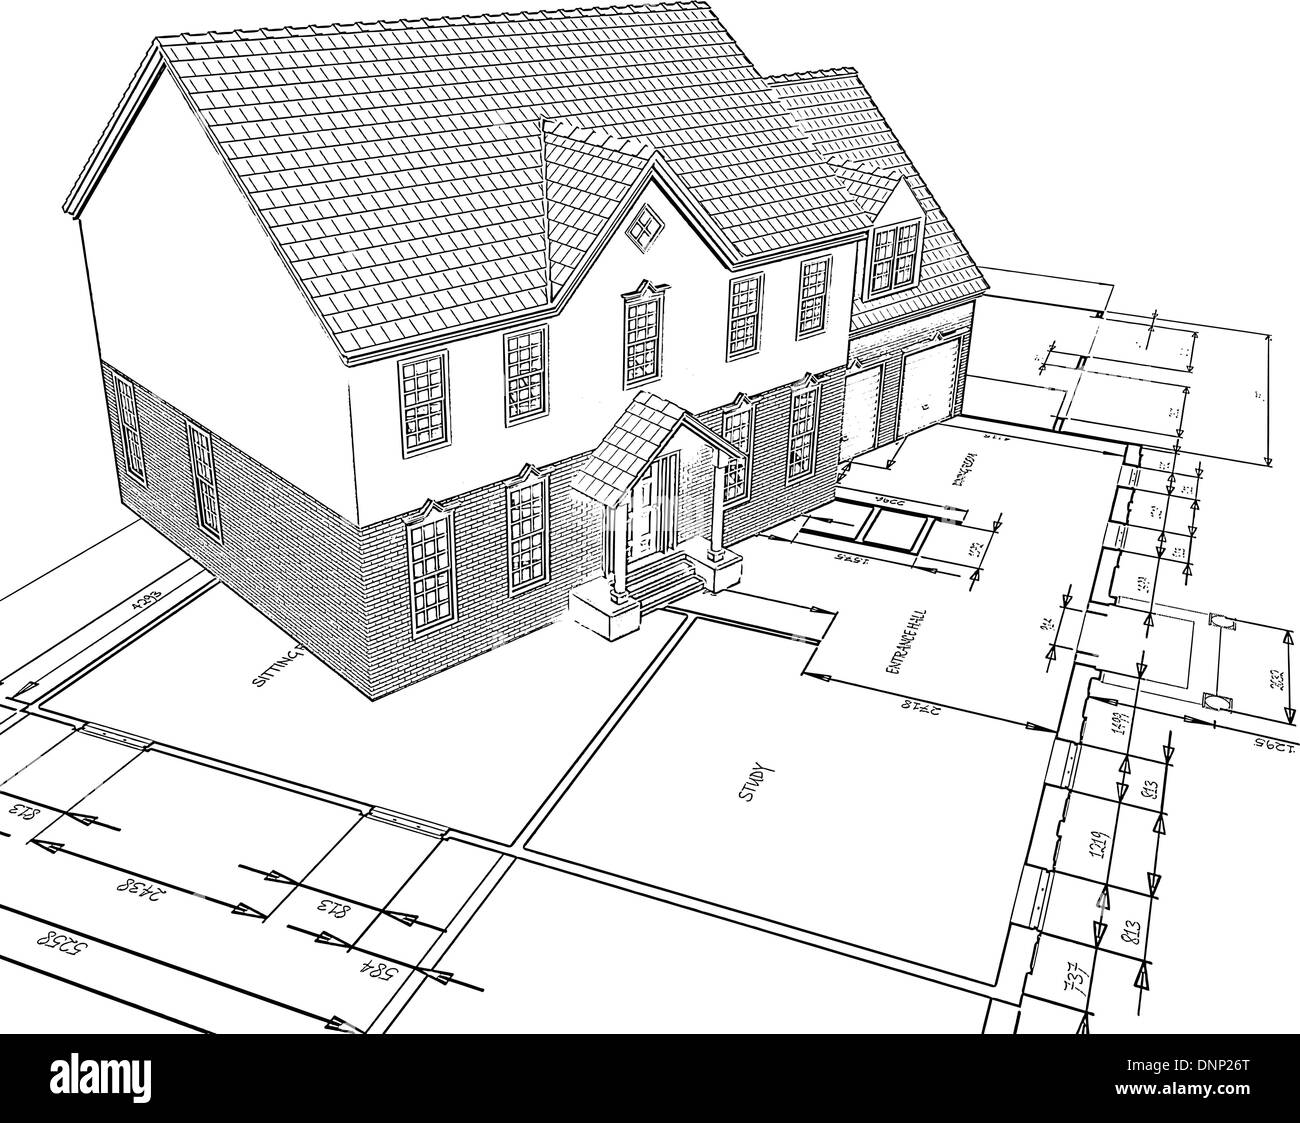 Sketched style illustration of a house on plans - Stock Image